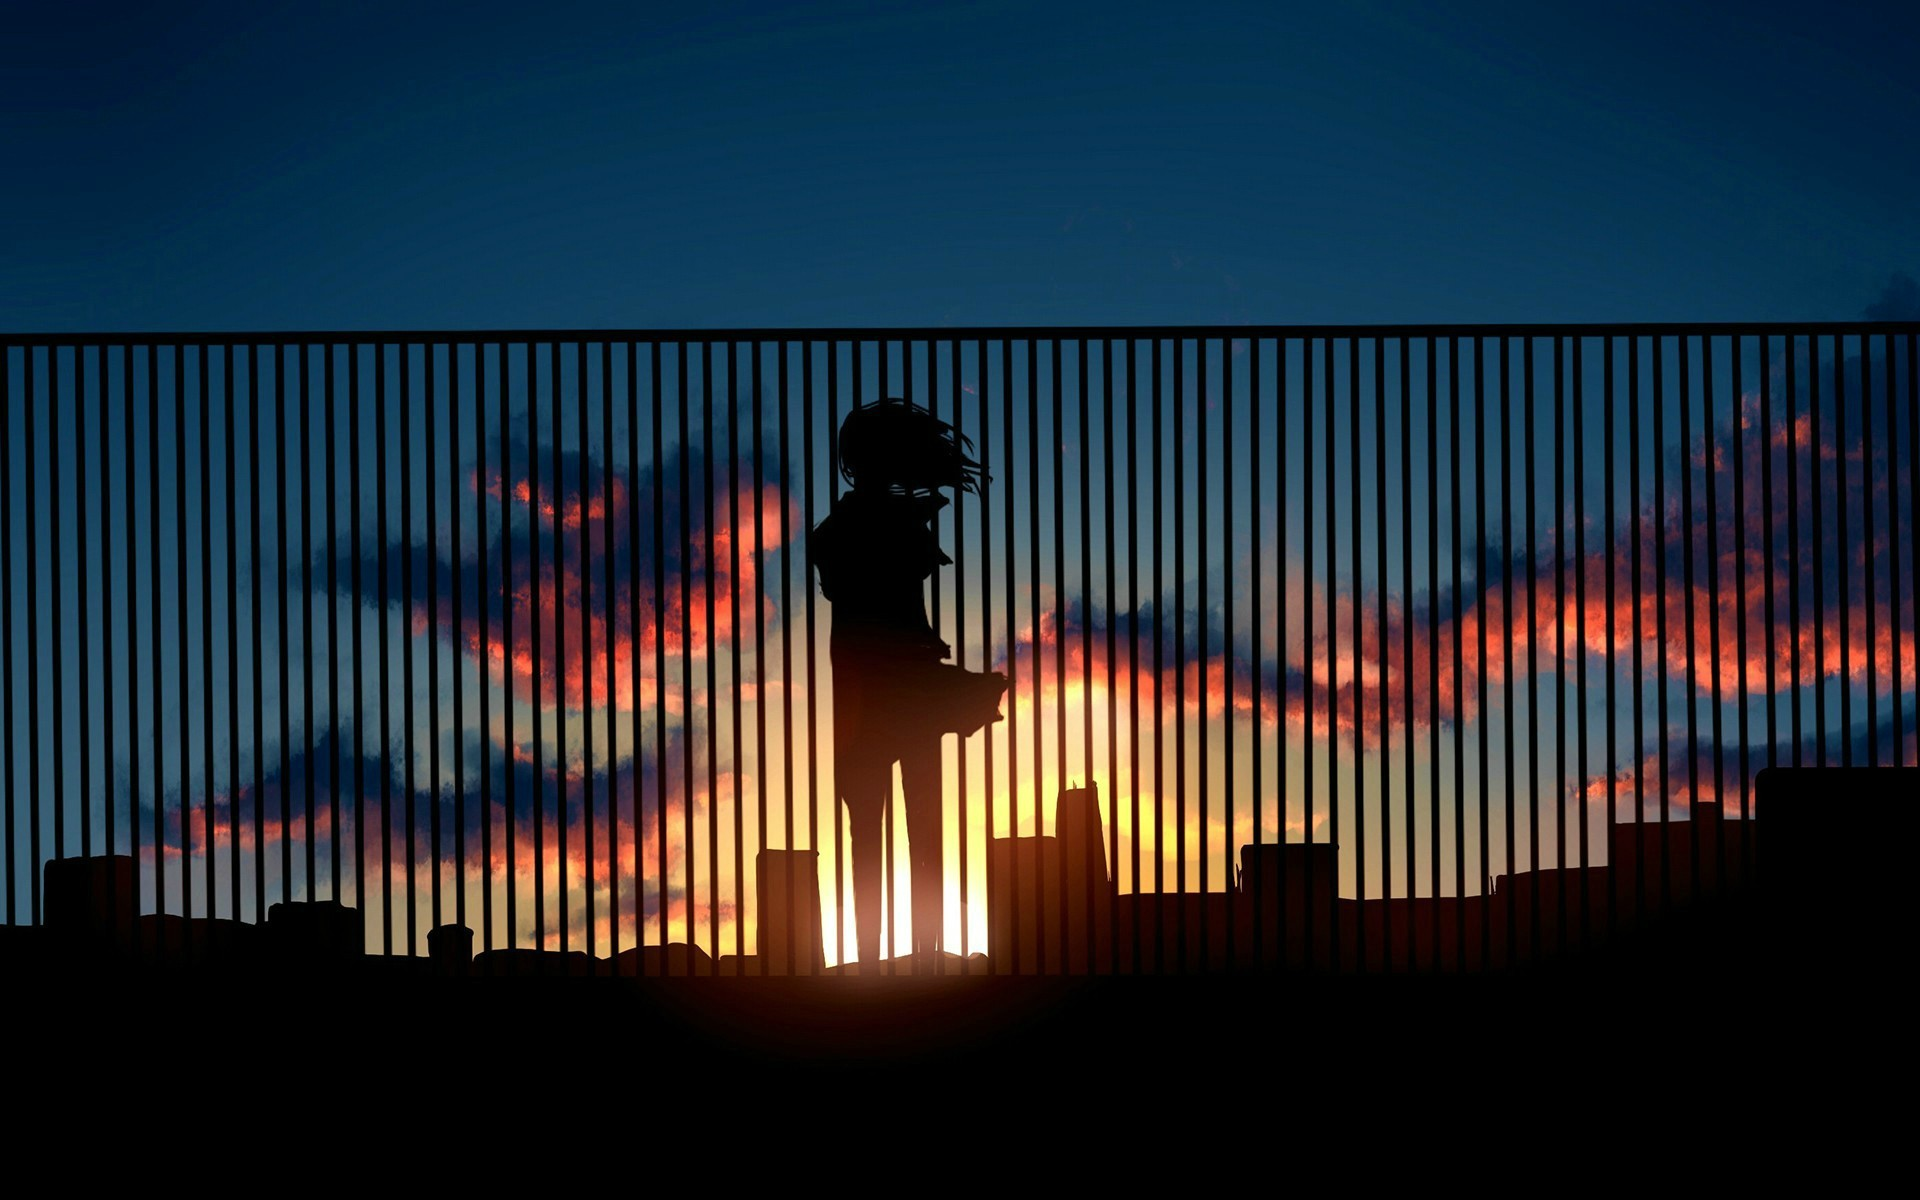 Anime Girl Sunrise Wallpaper With Resolution Anime Silhouette Sunset 285704 Hd Wallpaper Backgrounds Download